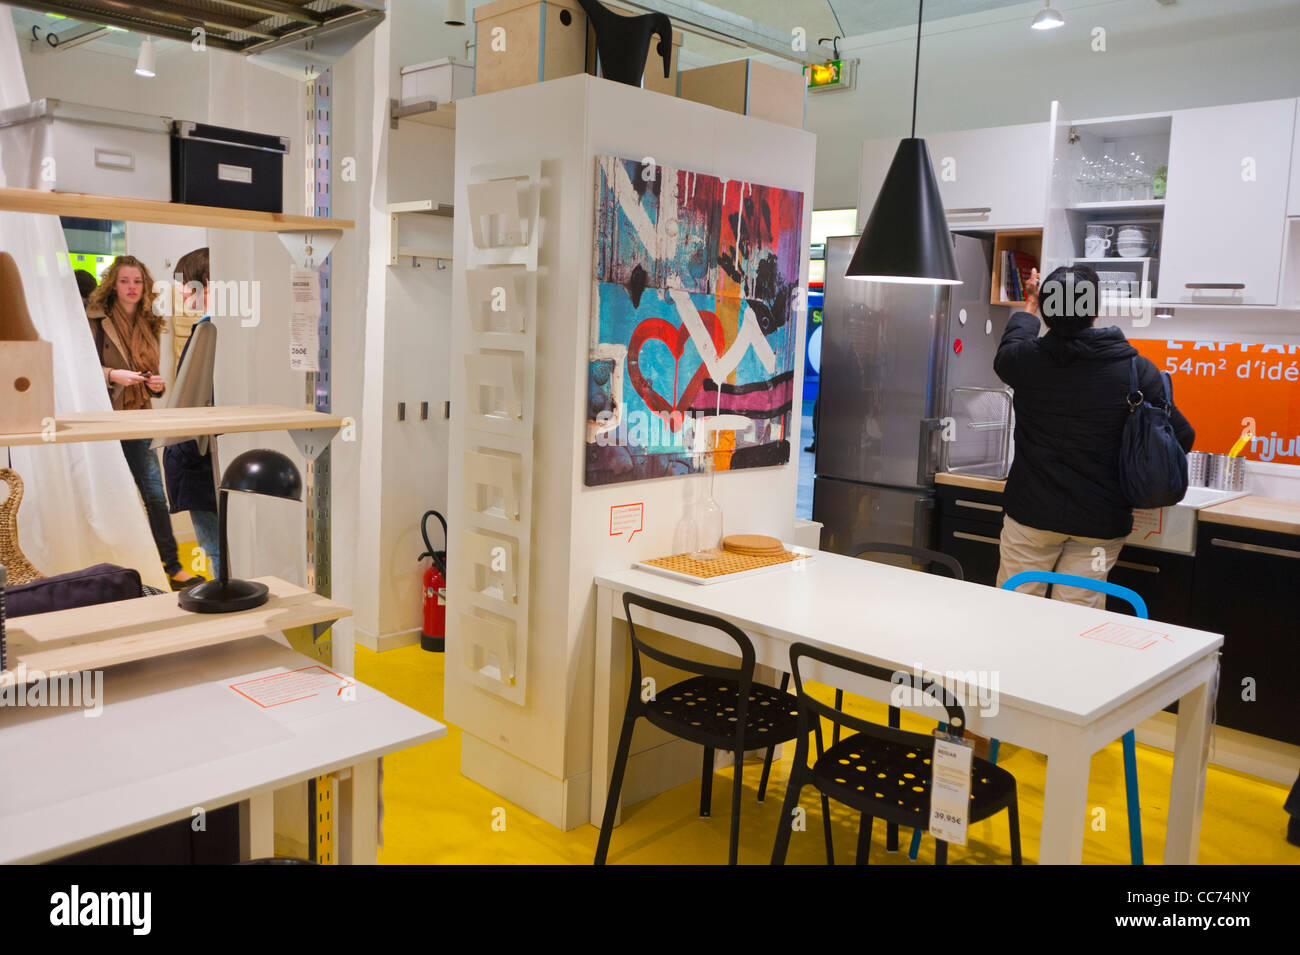 Etonnant Paris, France, Advertising Furniture Shopping, Ikea Furniture Store,  Installation, In Auber Station. International Ready To Assemble Furniture  Comapany, ...